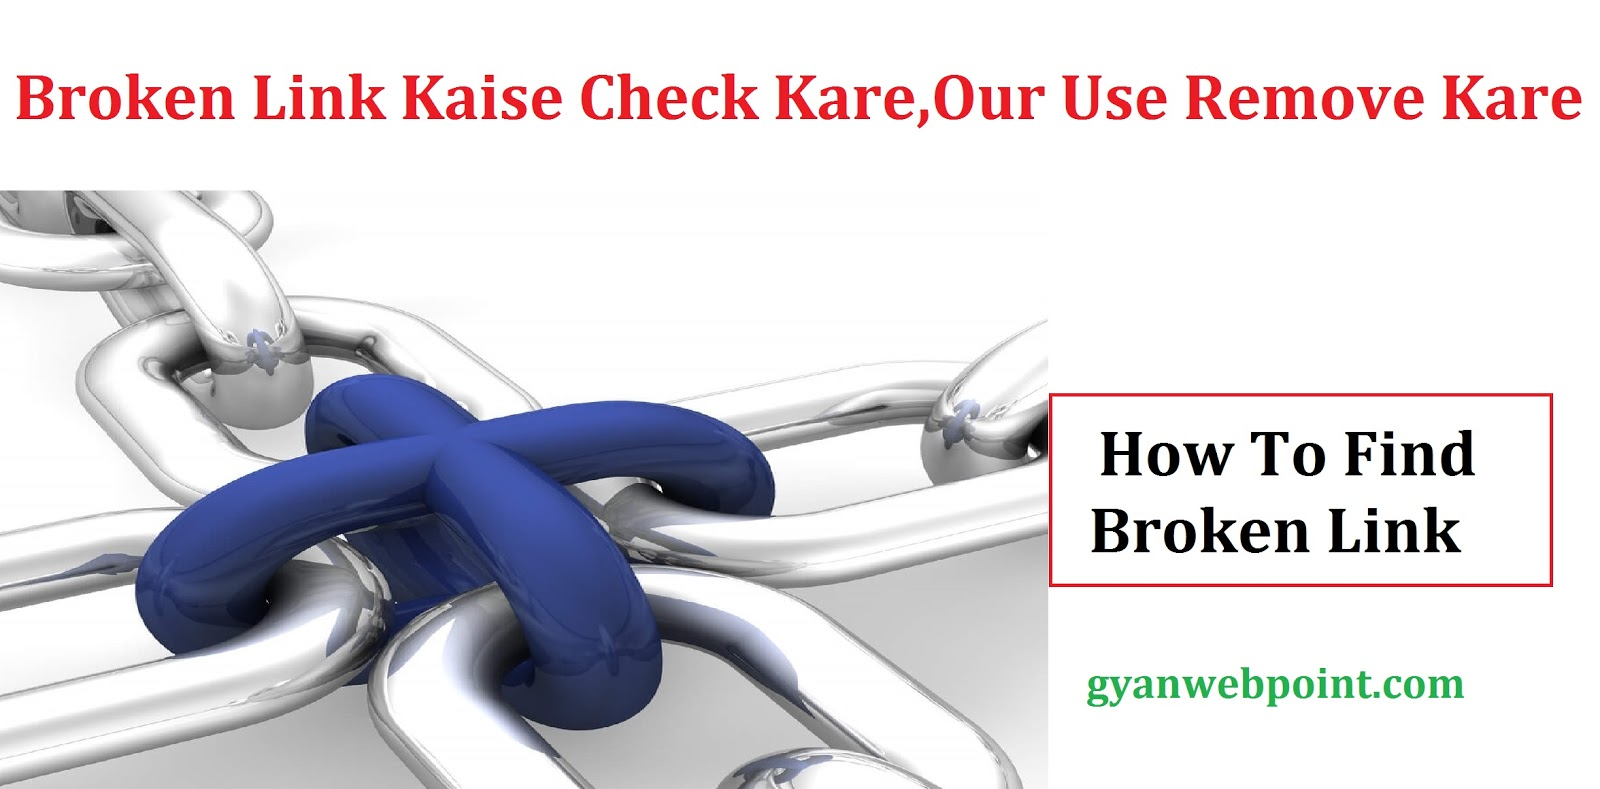 Blog-Website-Me-Broken-Link-Check-Our-Remove-Kaise-Kare